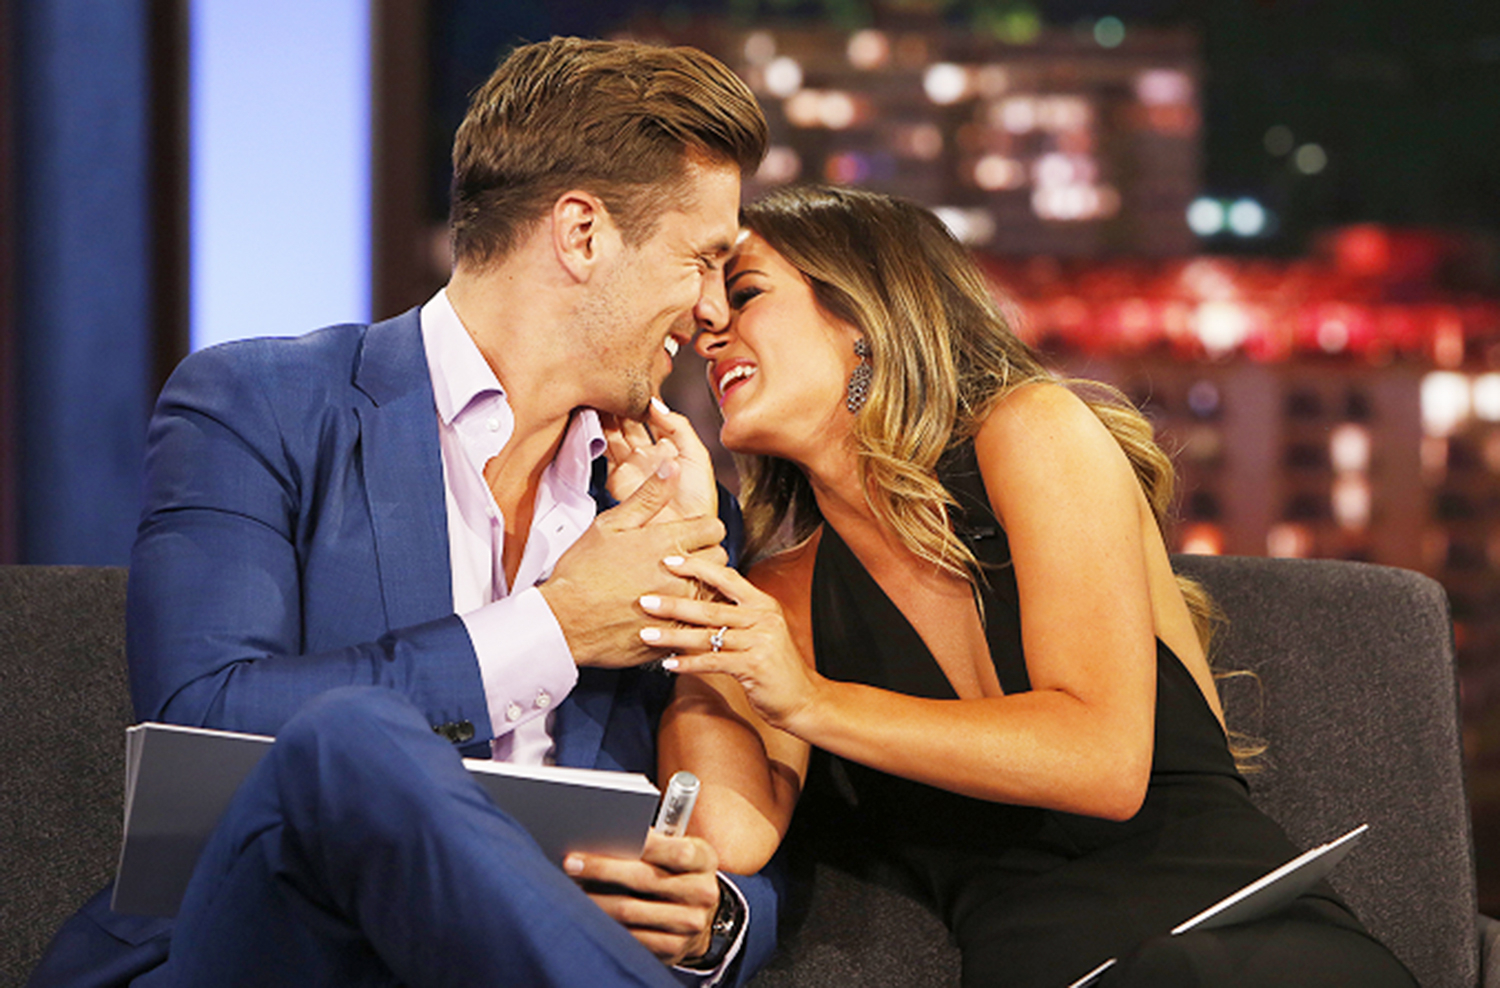 JoJo Fletcher and Fiance Jordan Rodgers Play the Newlywed Game on Jimmy Kimmel